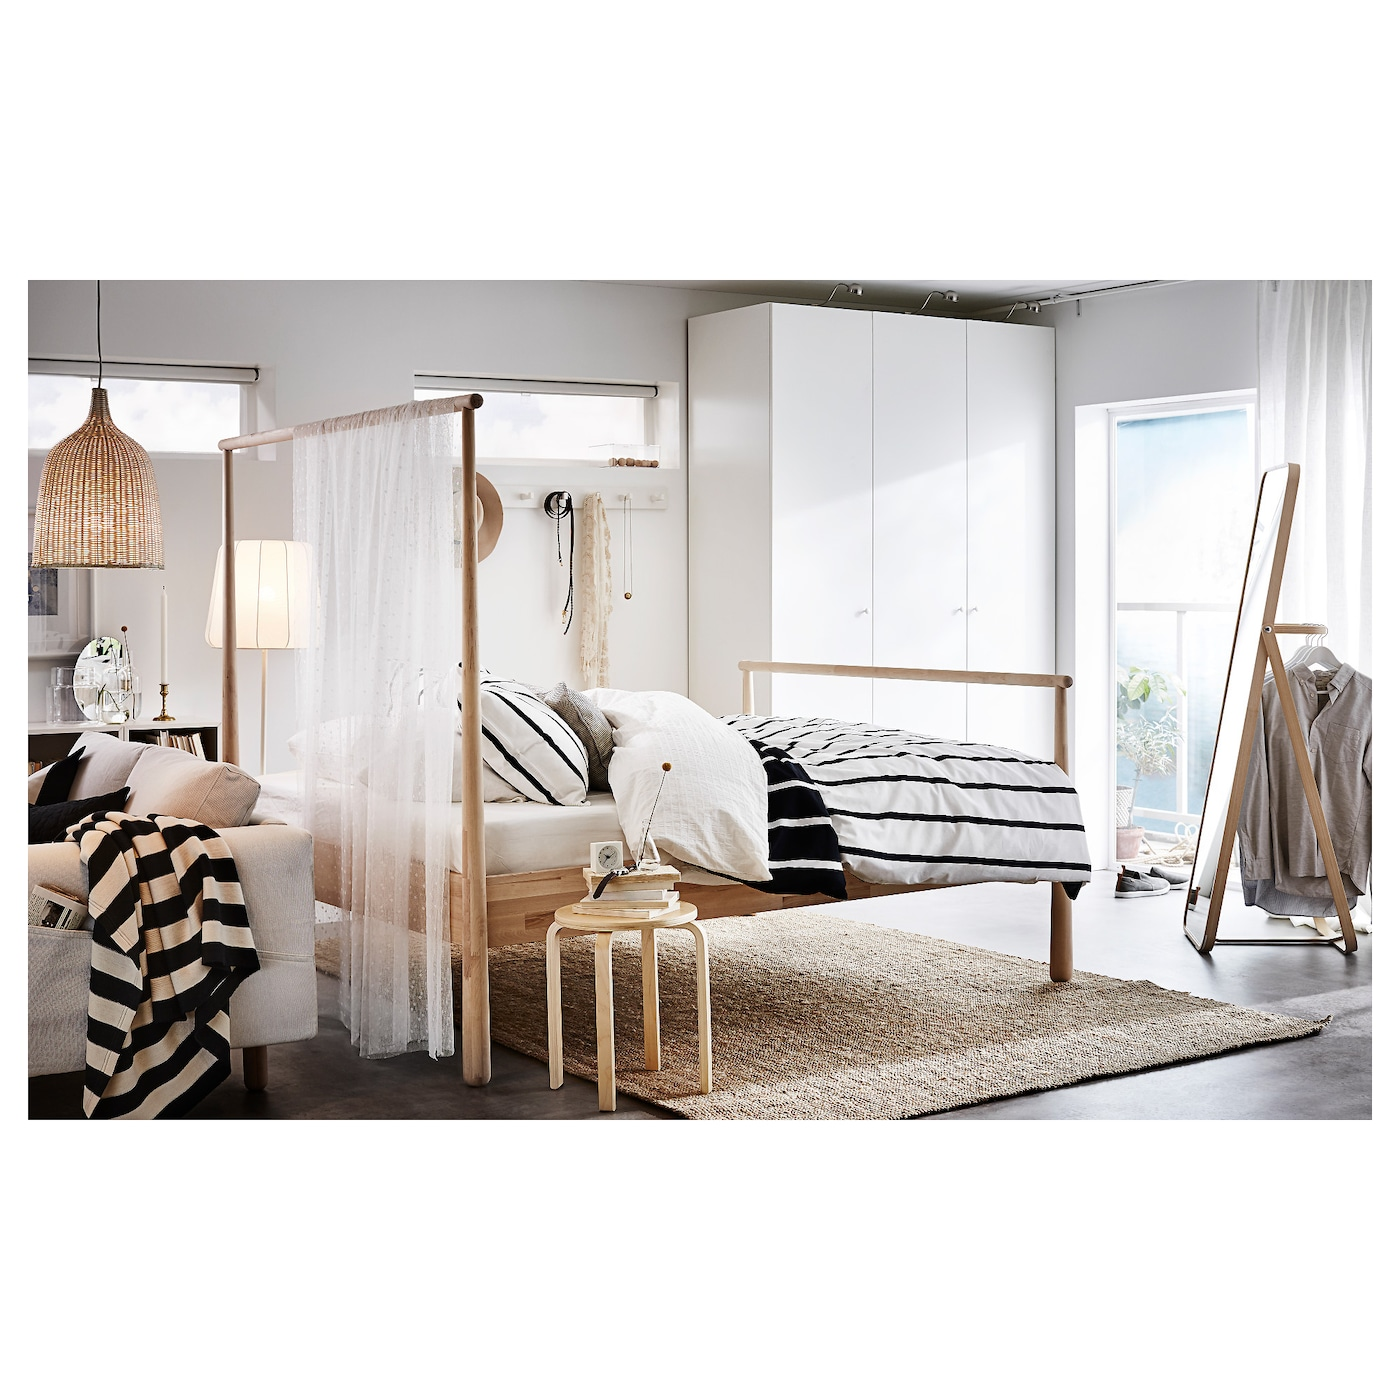 ikornnes staande spiegel essen 52 x 167 cm ikea. Black Bedroom Furniture Sets. Home Design Ideas